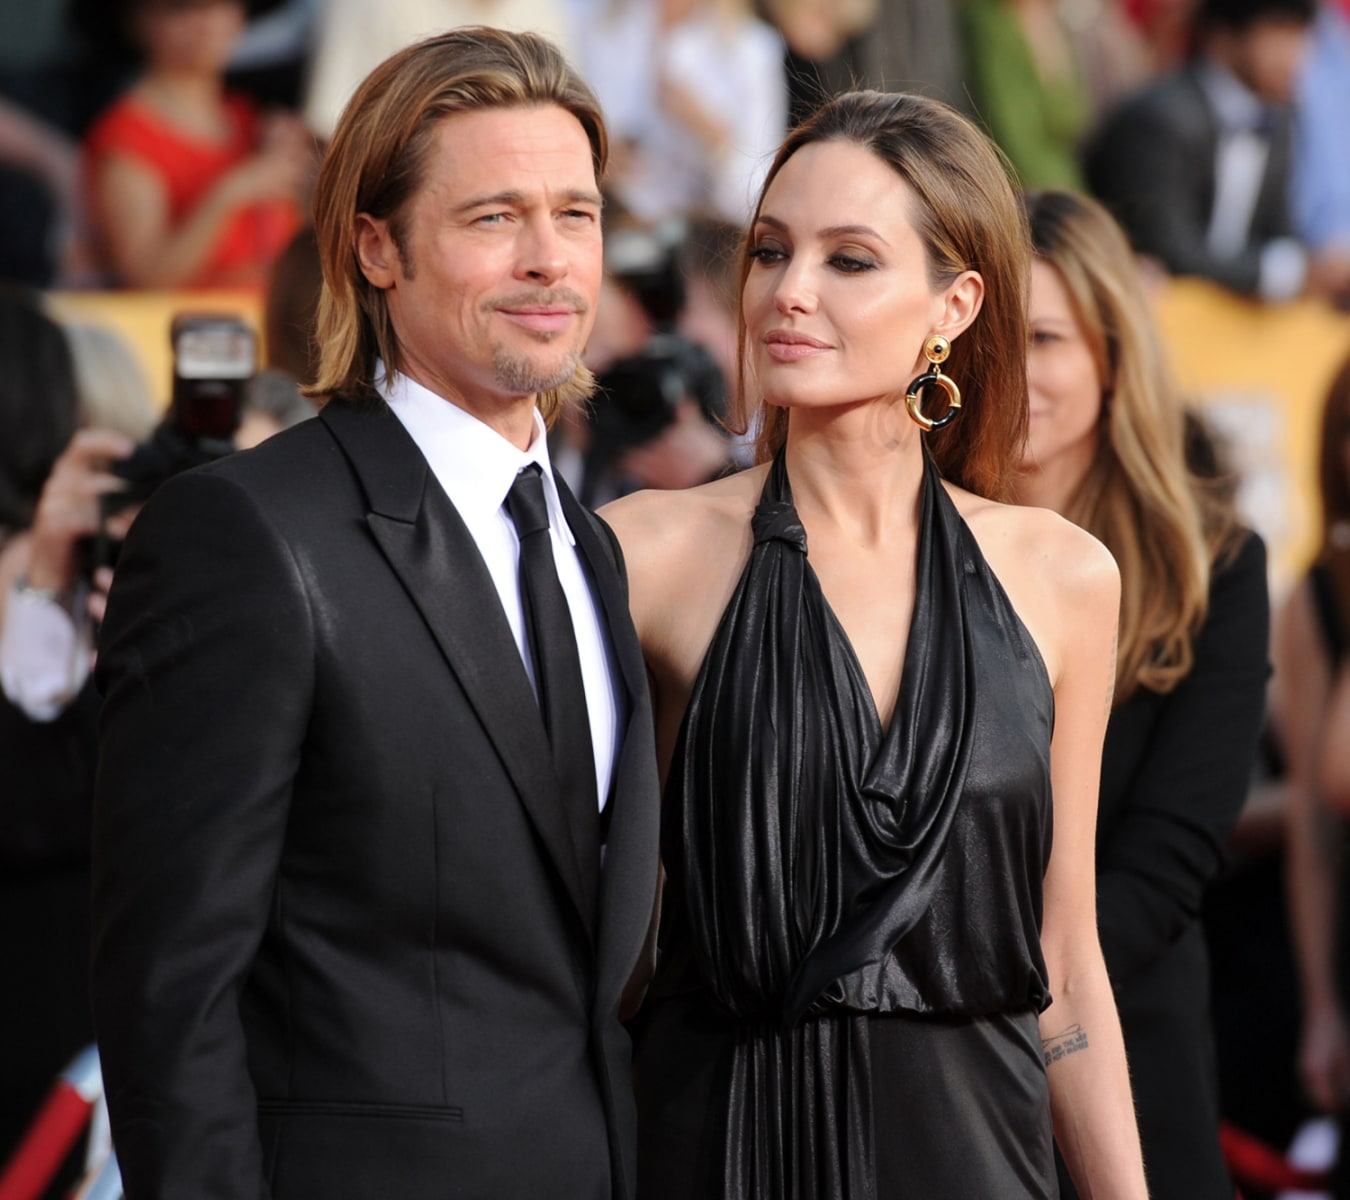 Brad and Jolie, both in black dress in one of the Award function